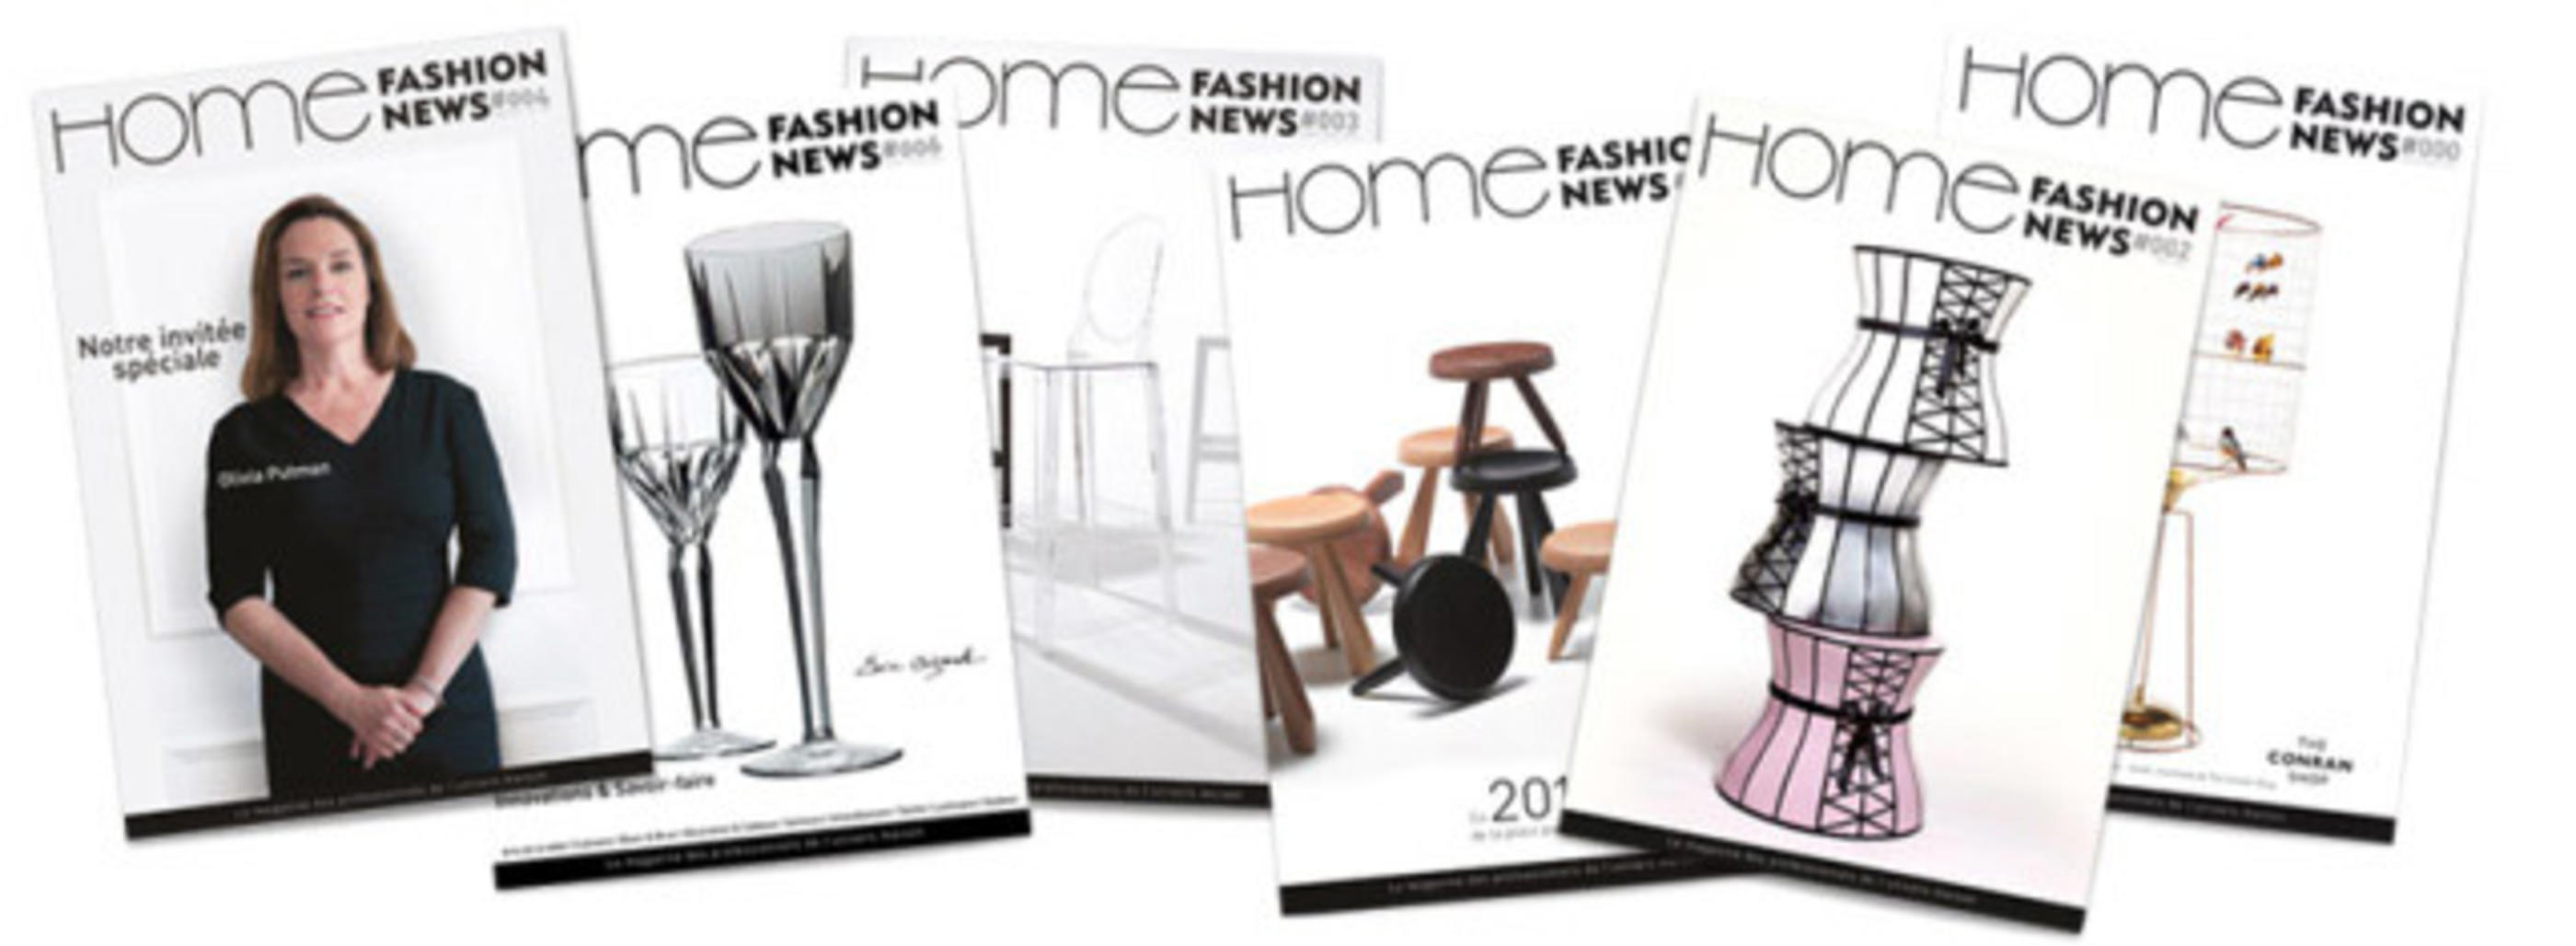 HOME FASHION NEWS - Juillet 2013